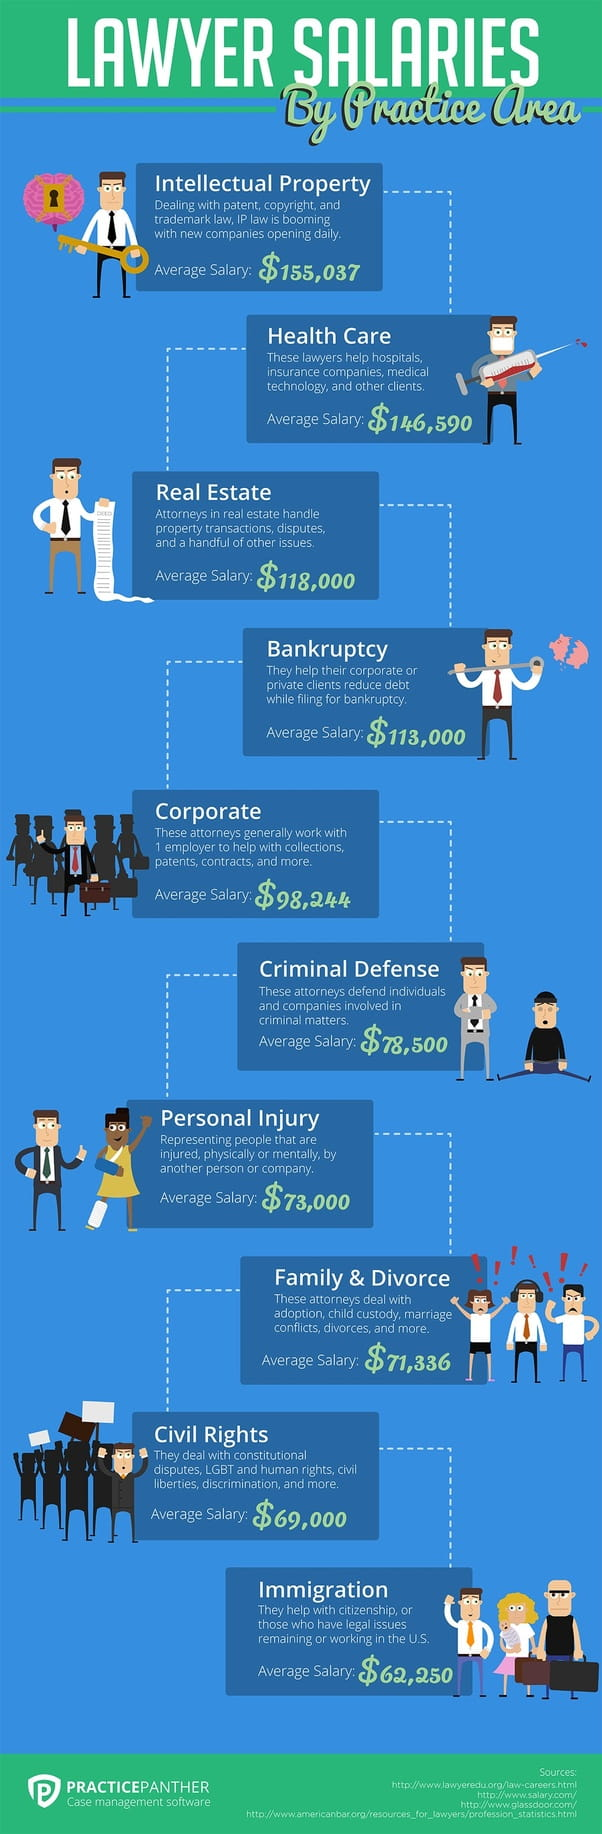 What Types of Lawyer Are in The Highest Demand